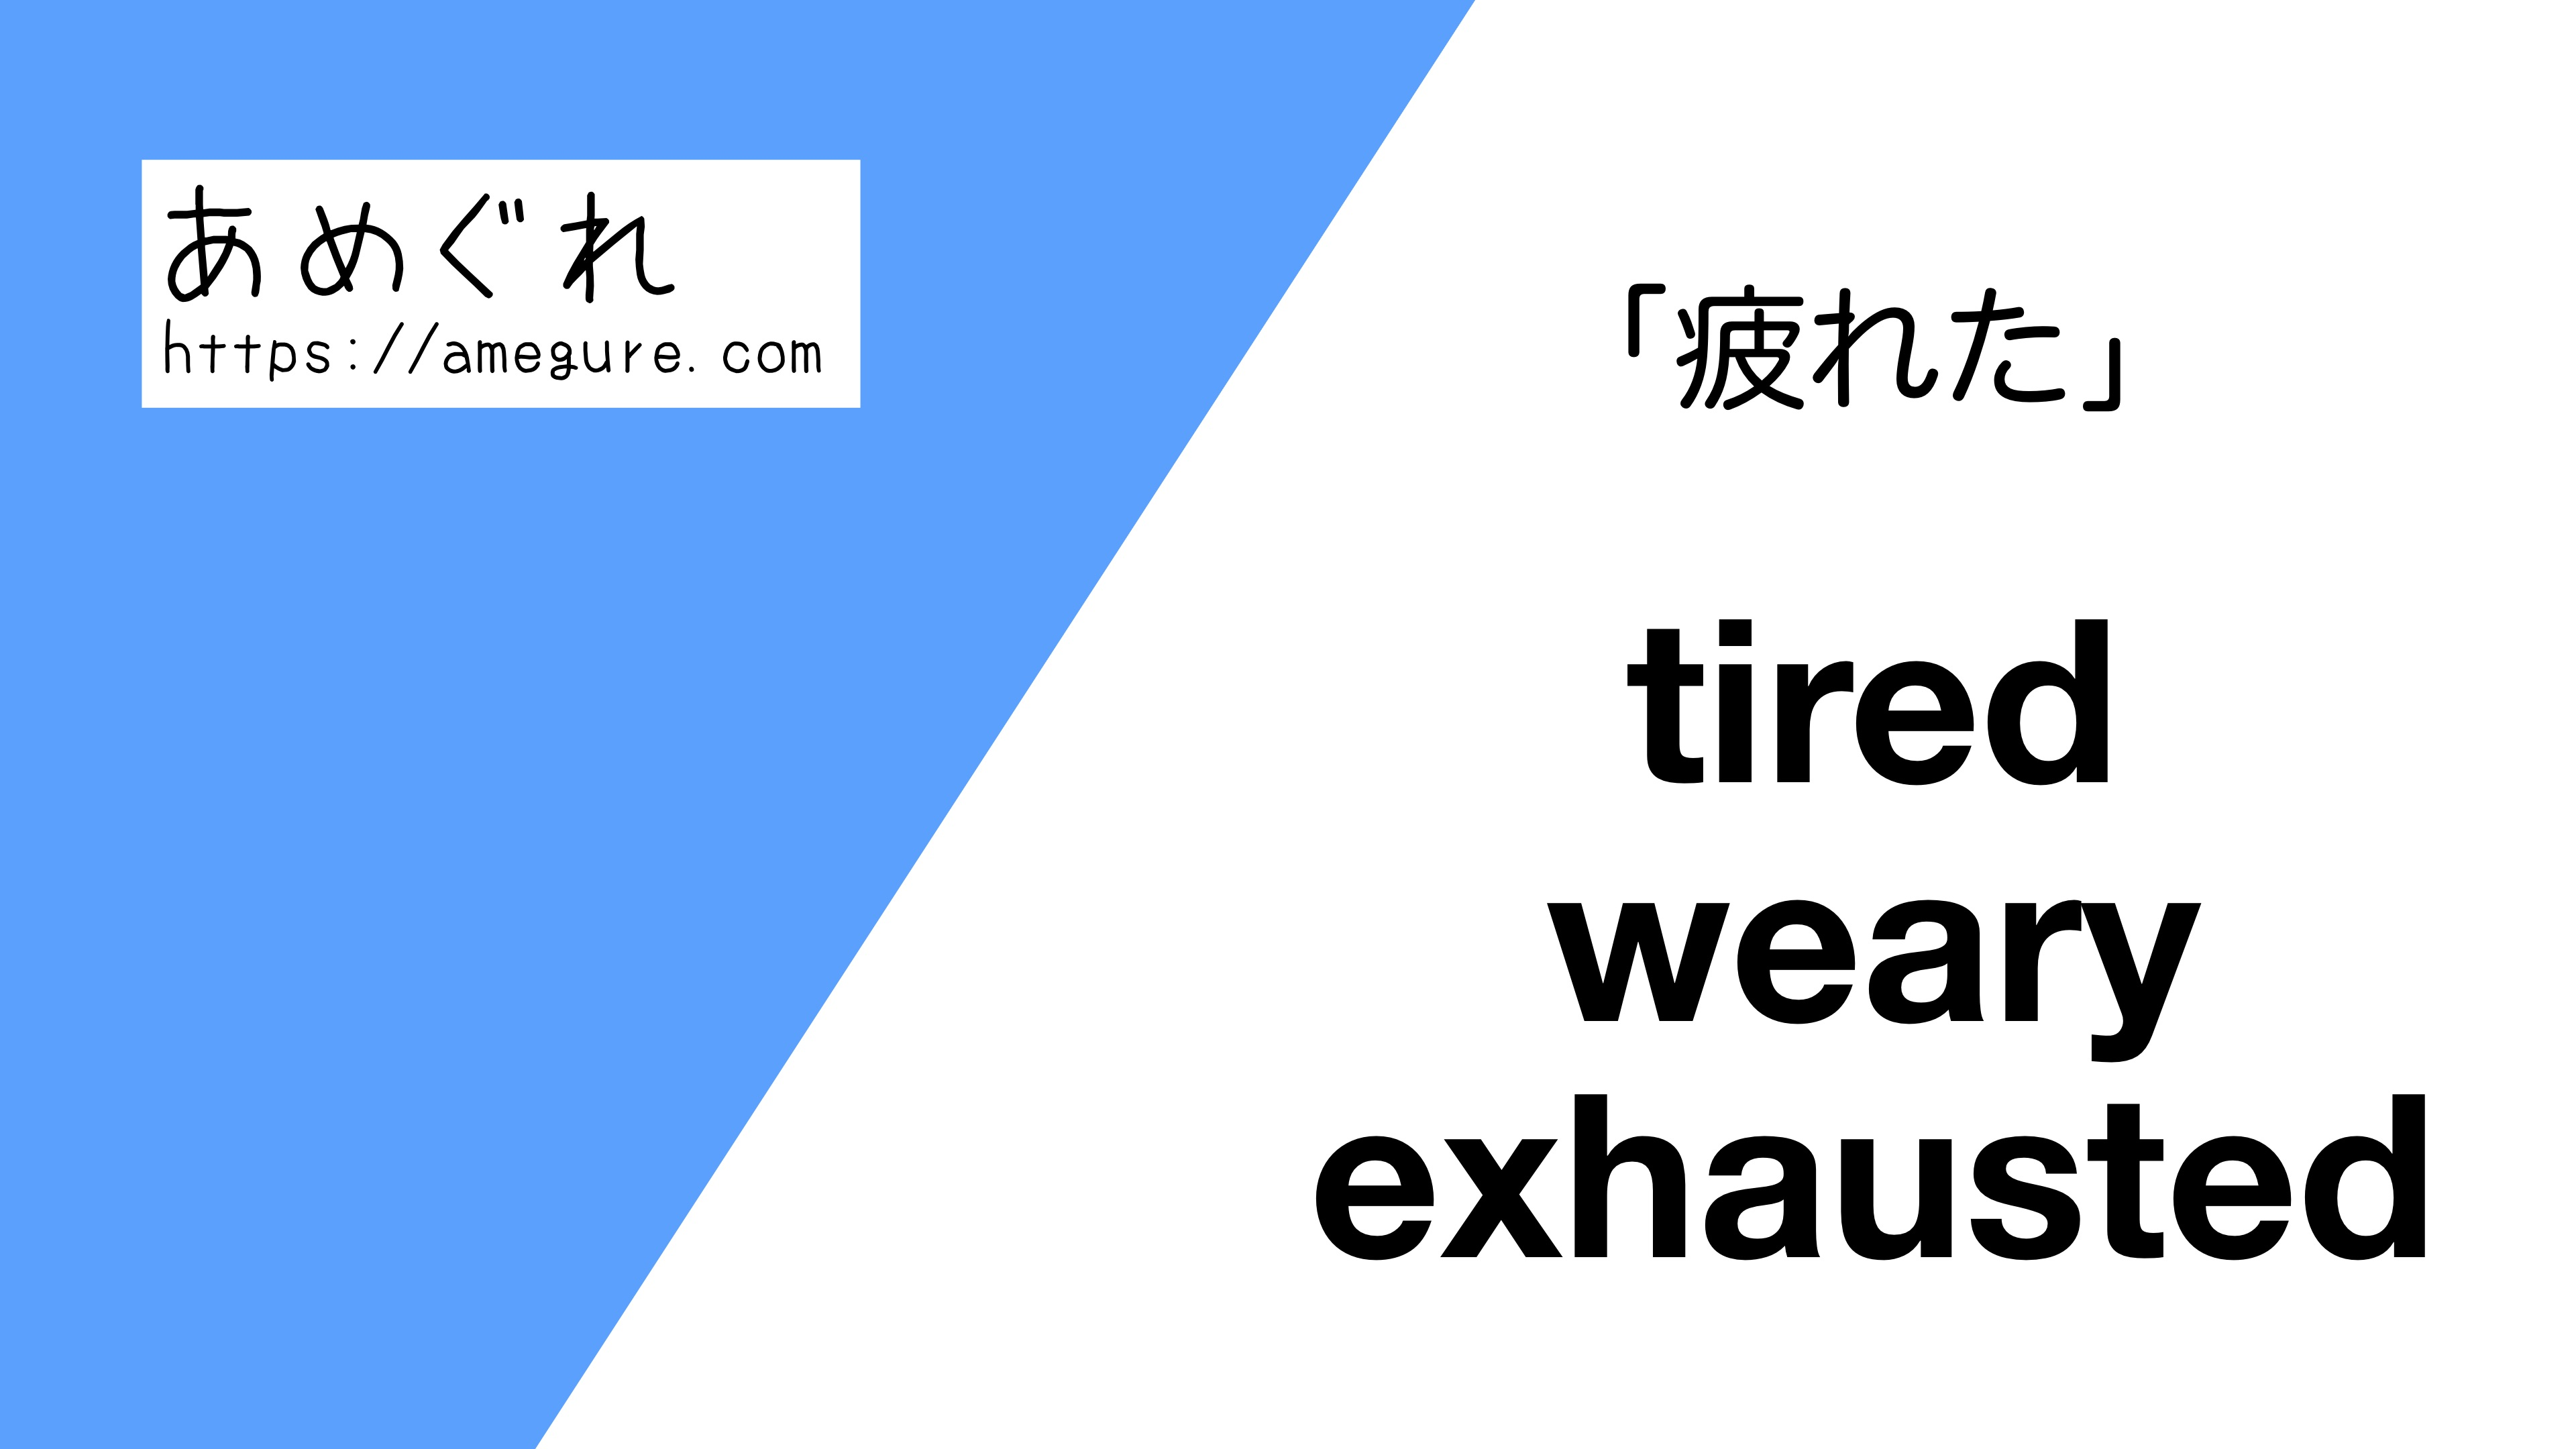 tired-weary-exhausted違い